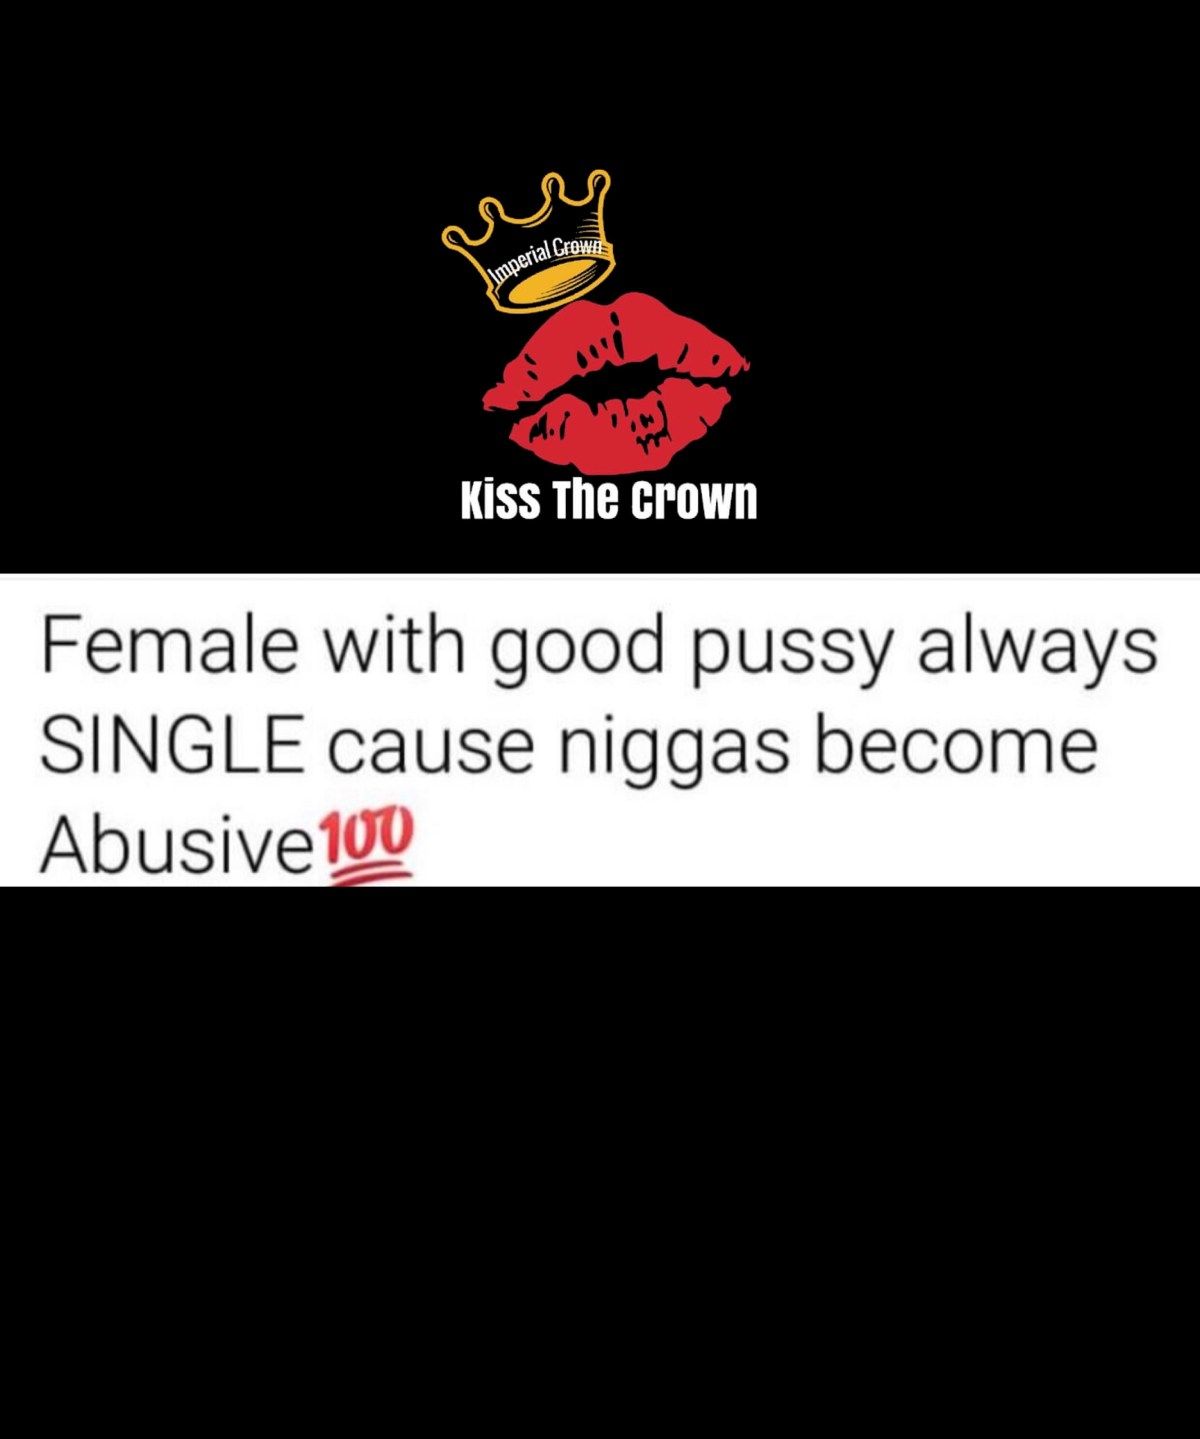 Female with good pussy always single cause niggas become abusive